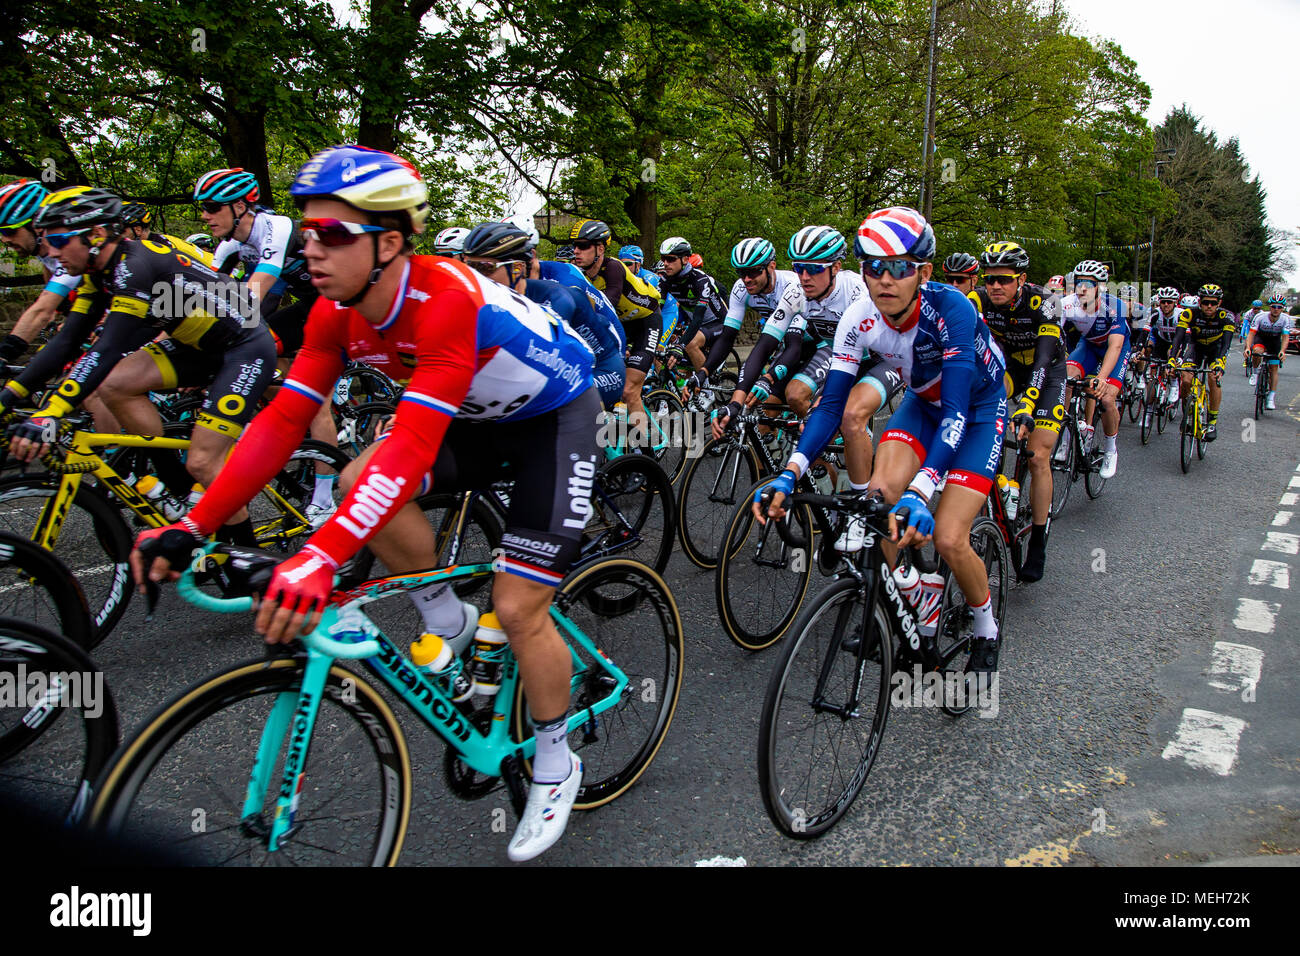 Cyclists taking part in the Tour de Yorkshire 2017 Stock Photo